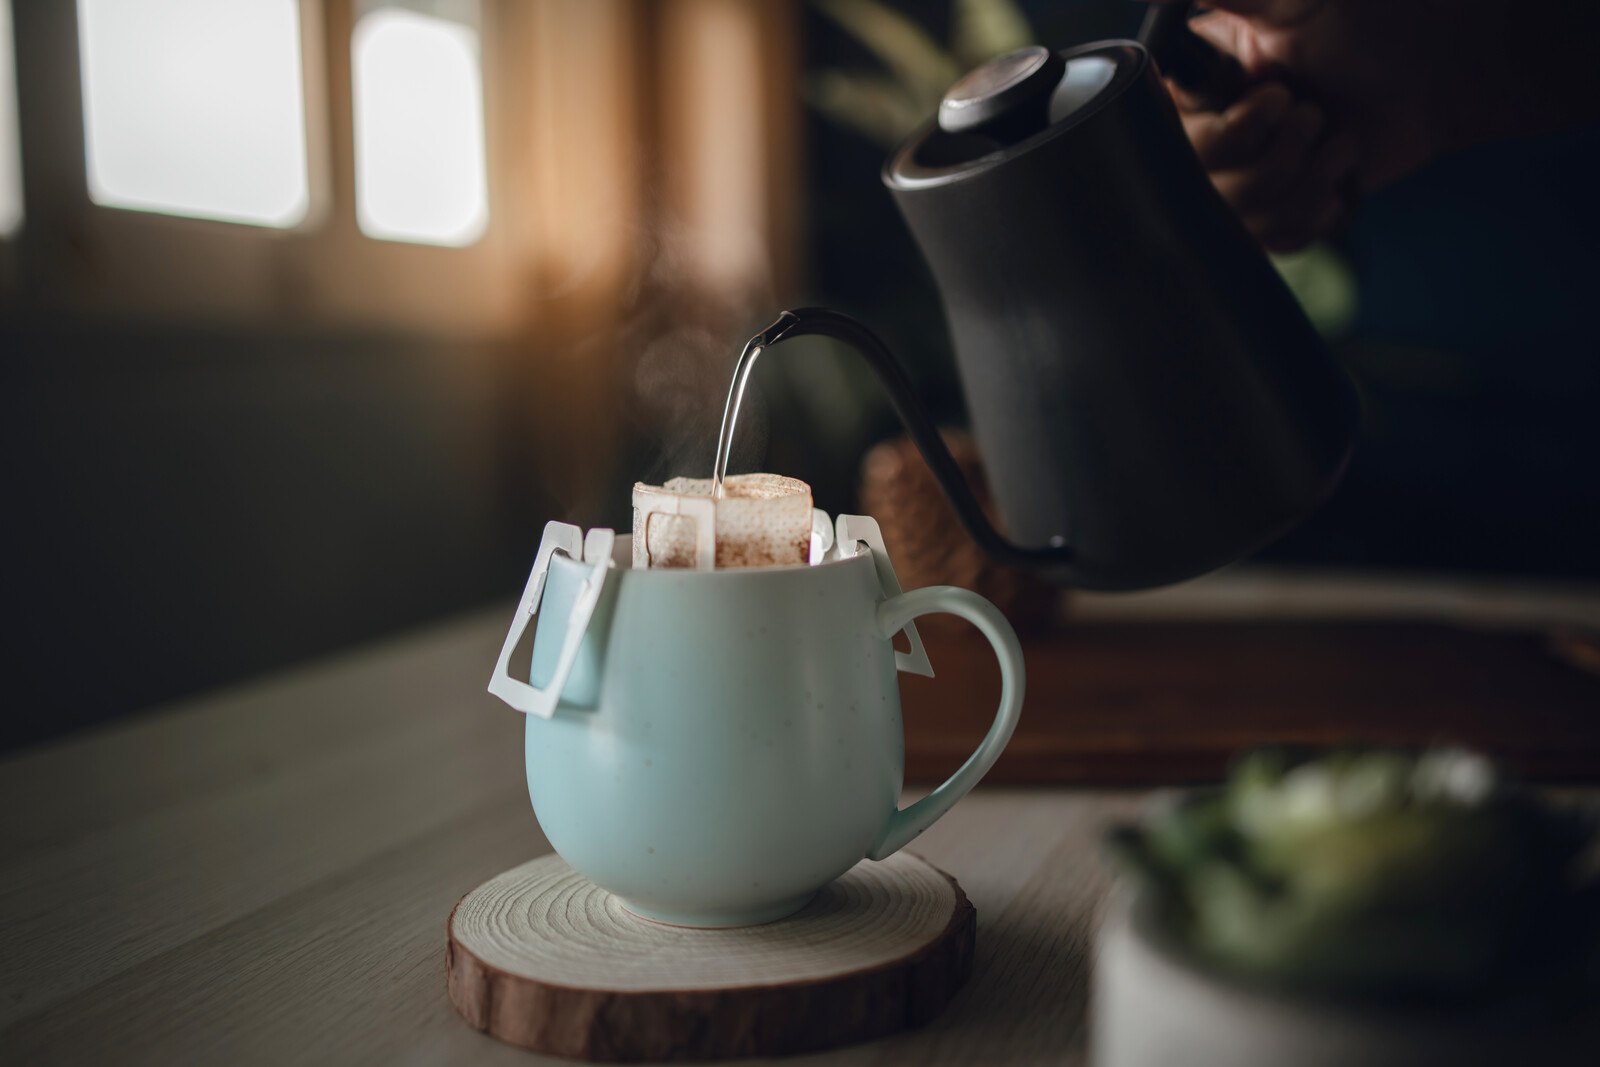 stylish black gooseneck kettle slowly pouring boiling water on a white coffee cup amid the morning light